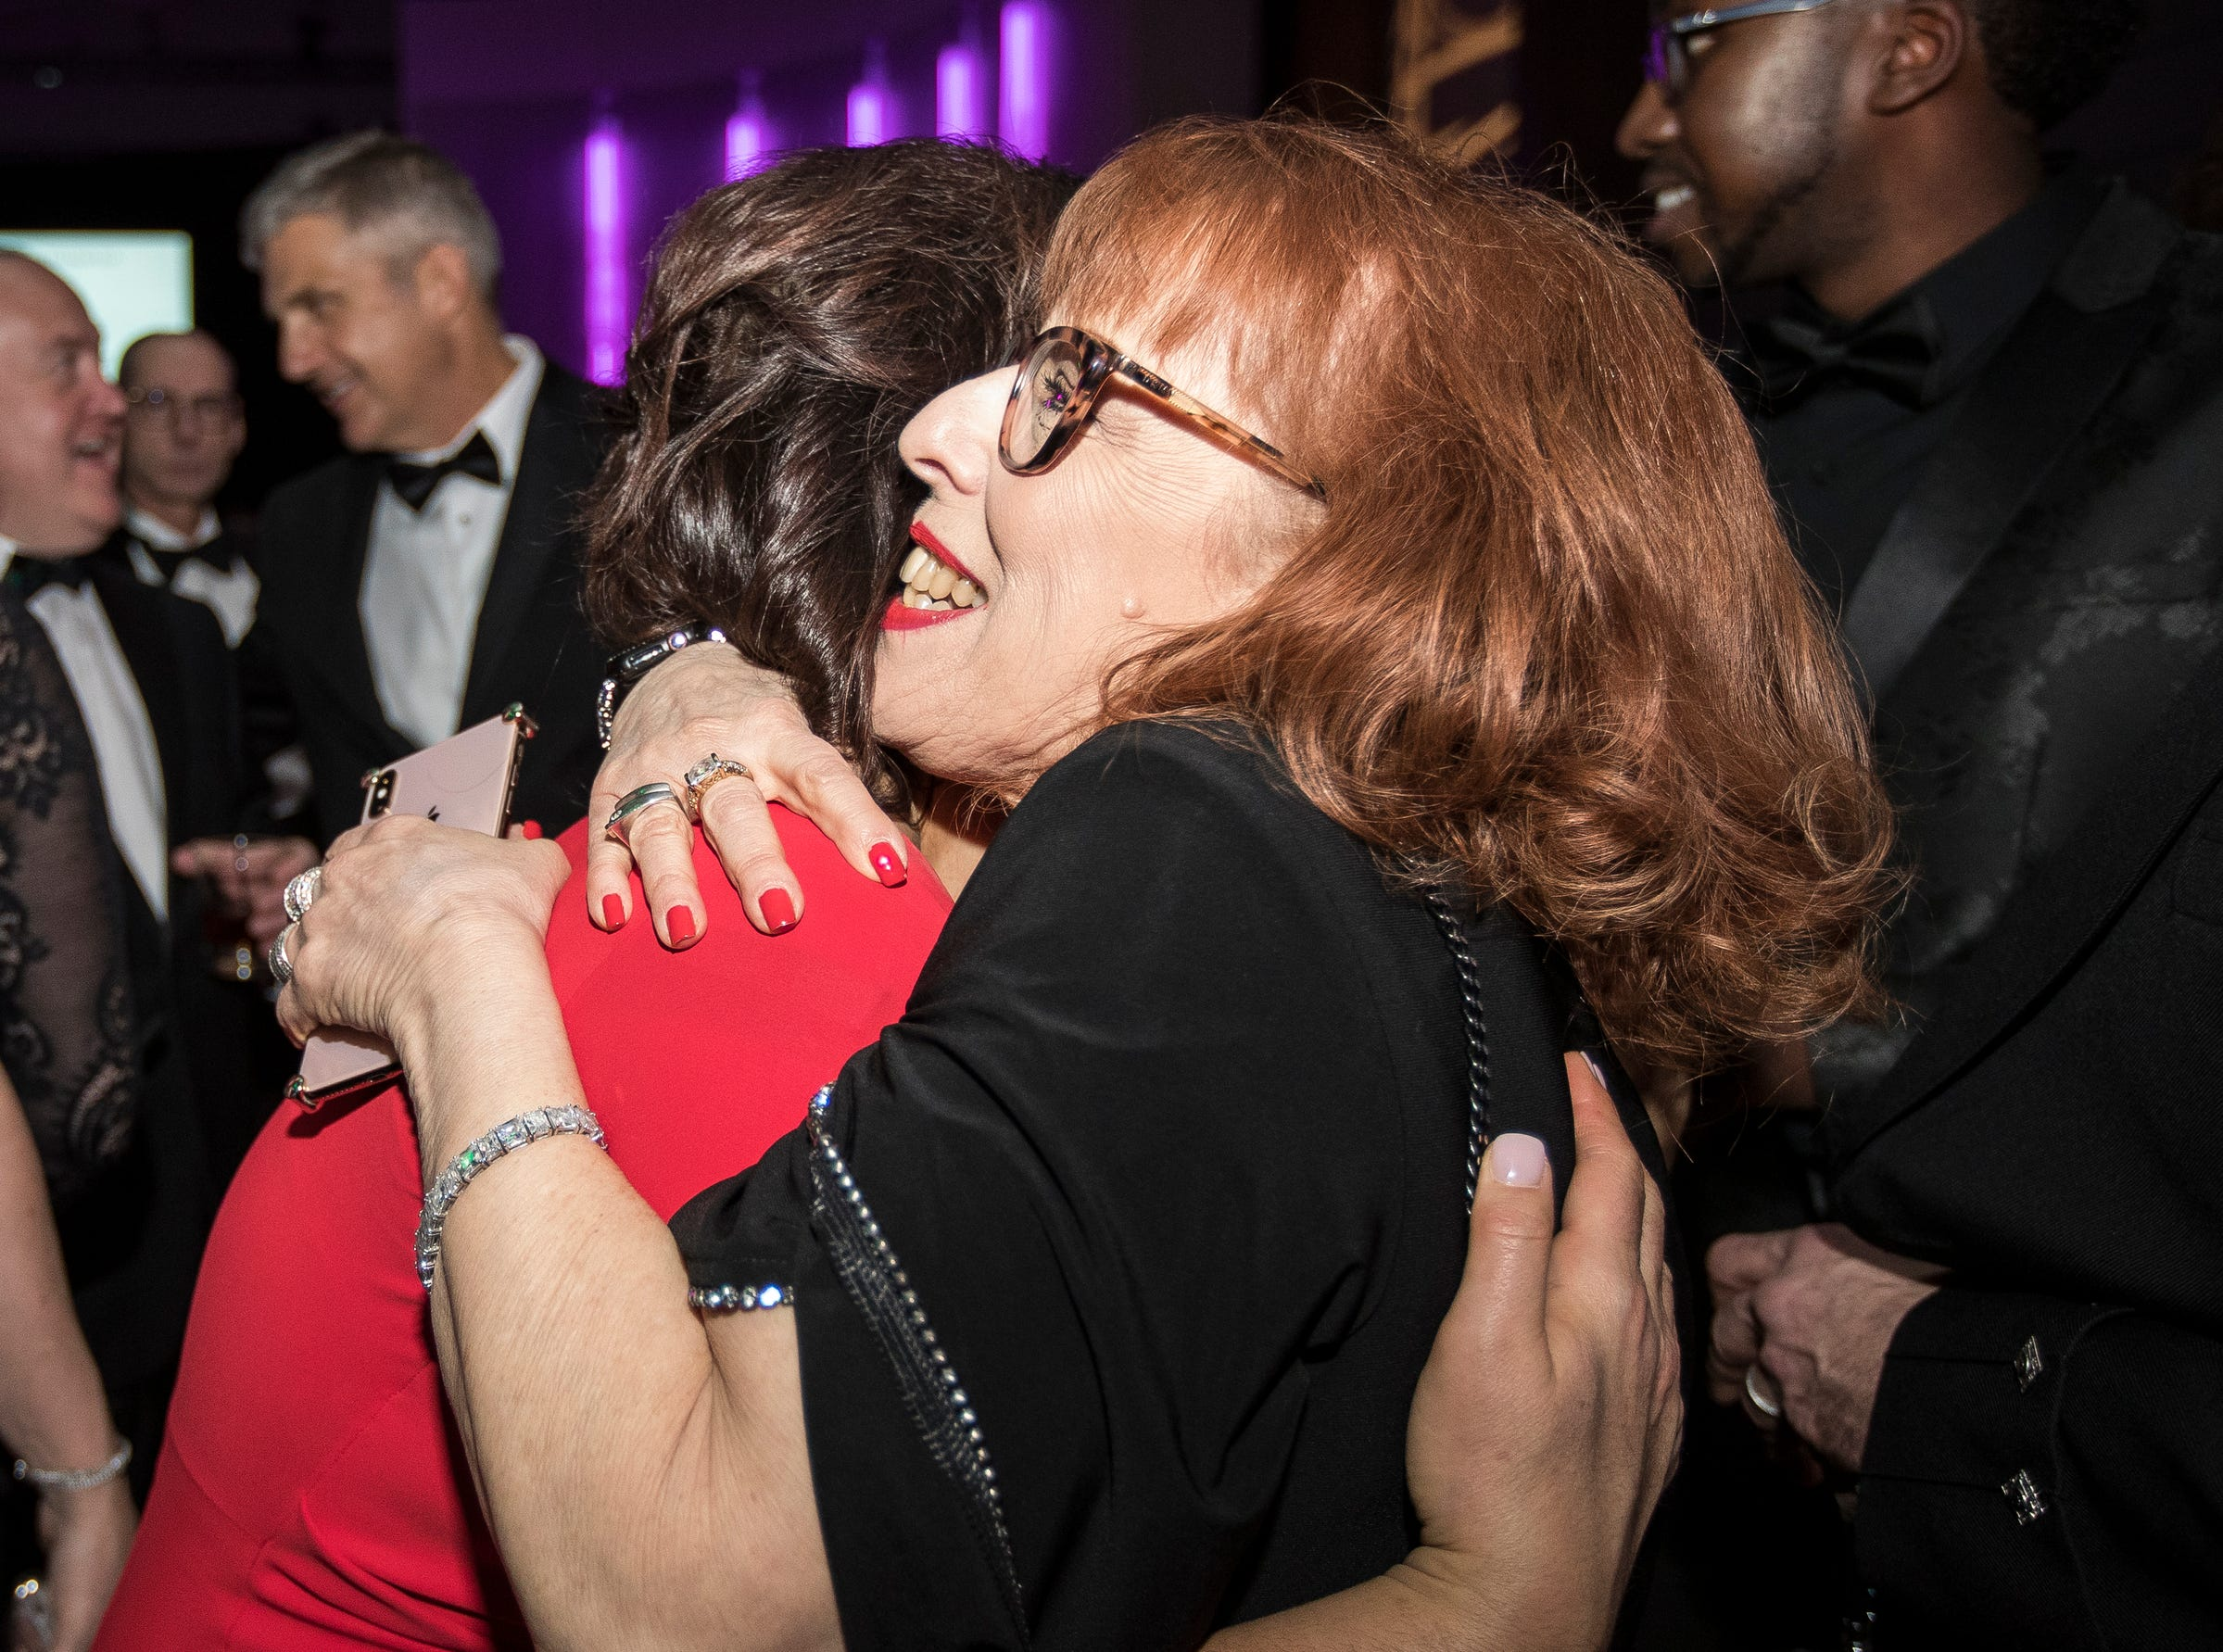 Governor Gretchen Whitmer hugs Sharon Baseman of Huntington Woods during the inaugural ball at Cobo Center in Detroit on Tuesday, Jan. 1, 2019.